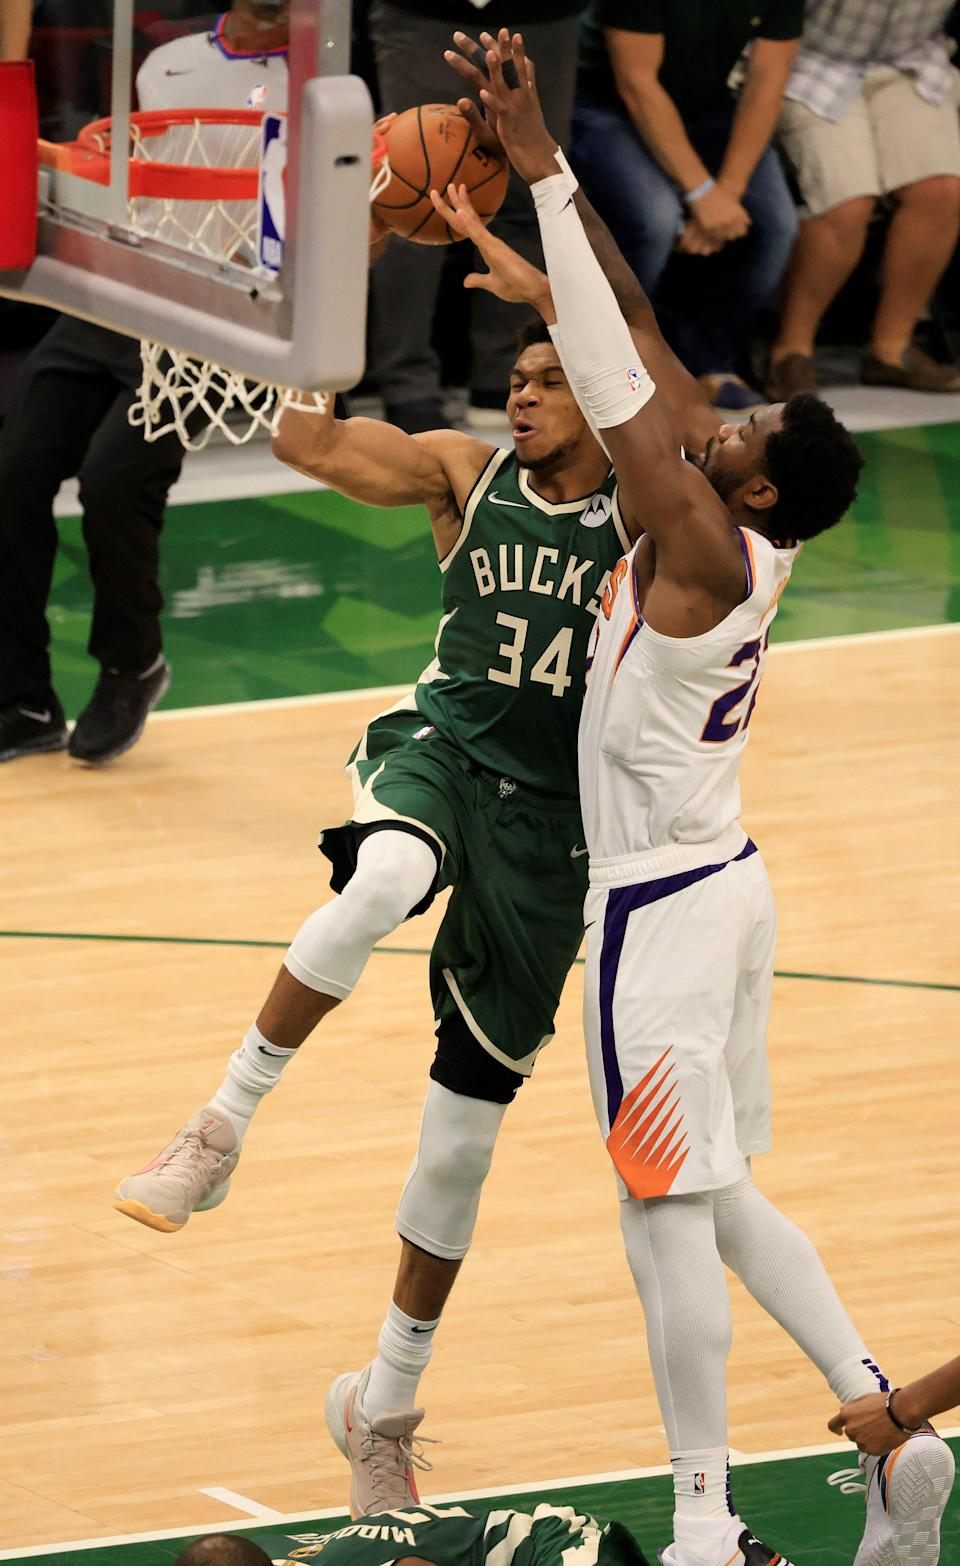 Deandre Ayton (right) fouls Giannis Antetokounmpo in the second half of Game 3. Ayton was limited to just 24 minutes because of foul trouble.